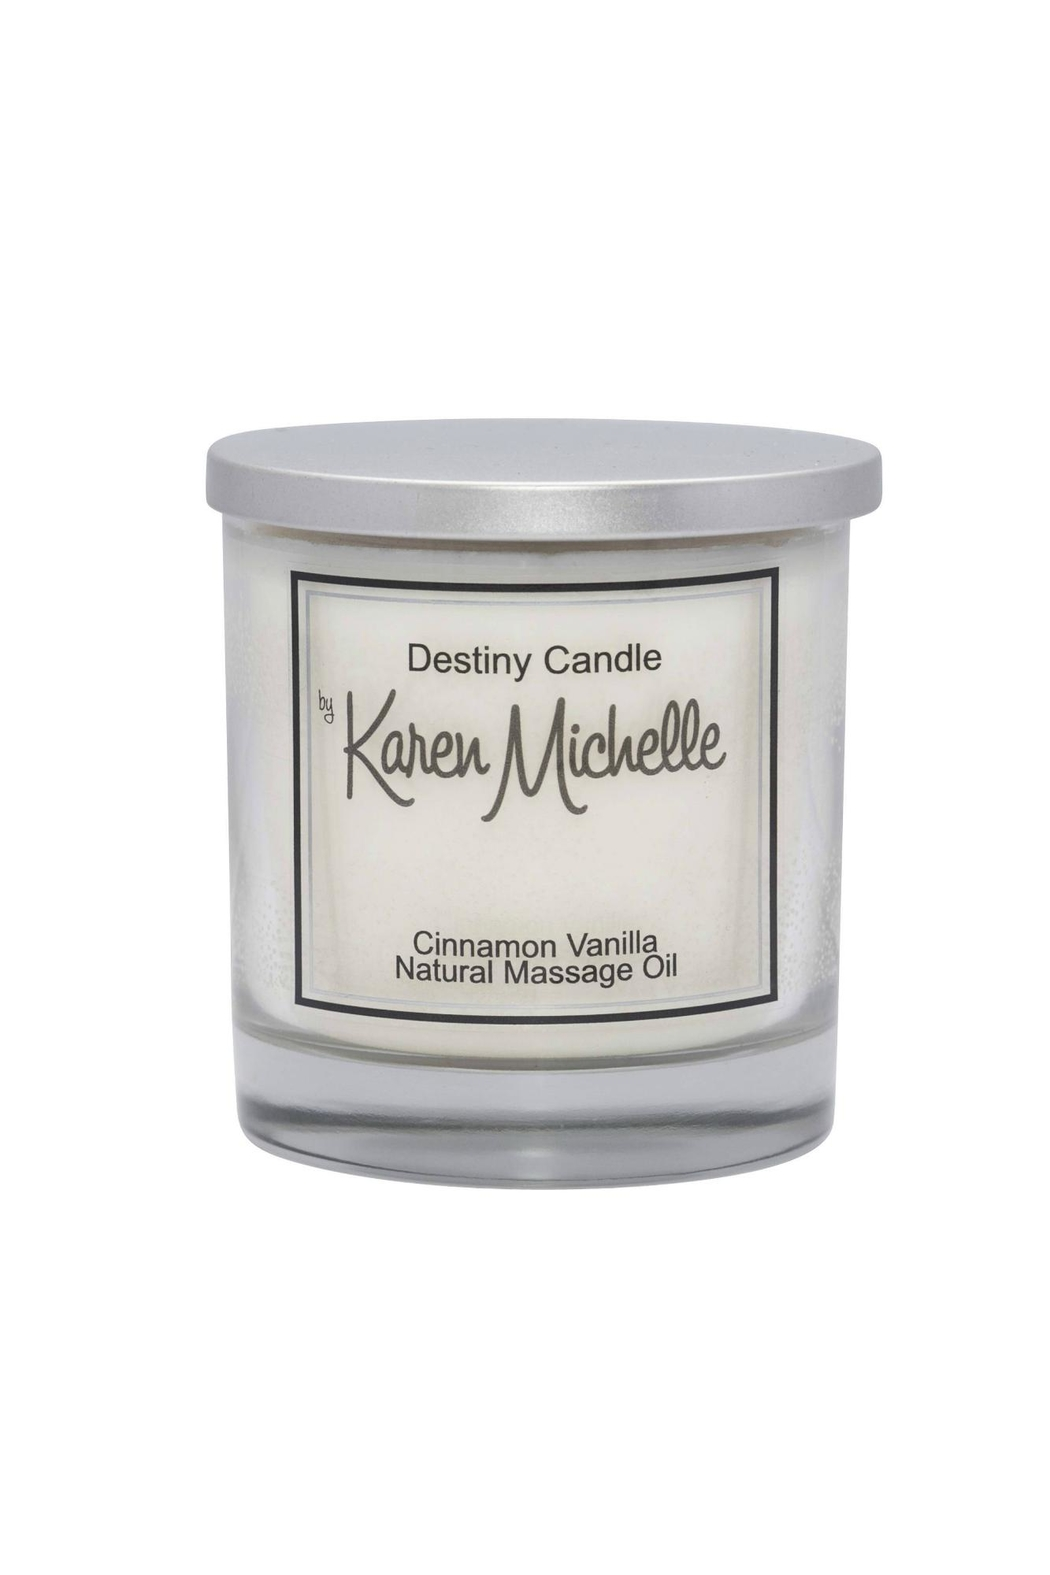 Destiny Candle by Karen Michelle Cinnamon Vanilla Oil Candle - Main Image